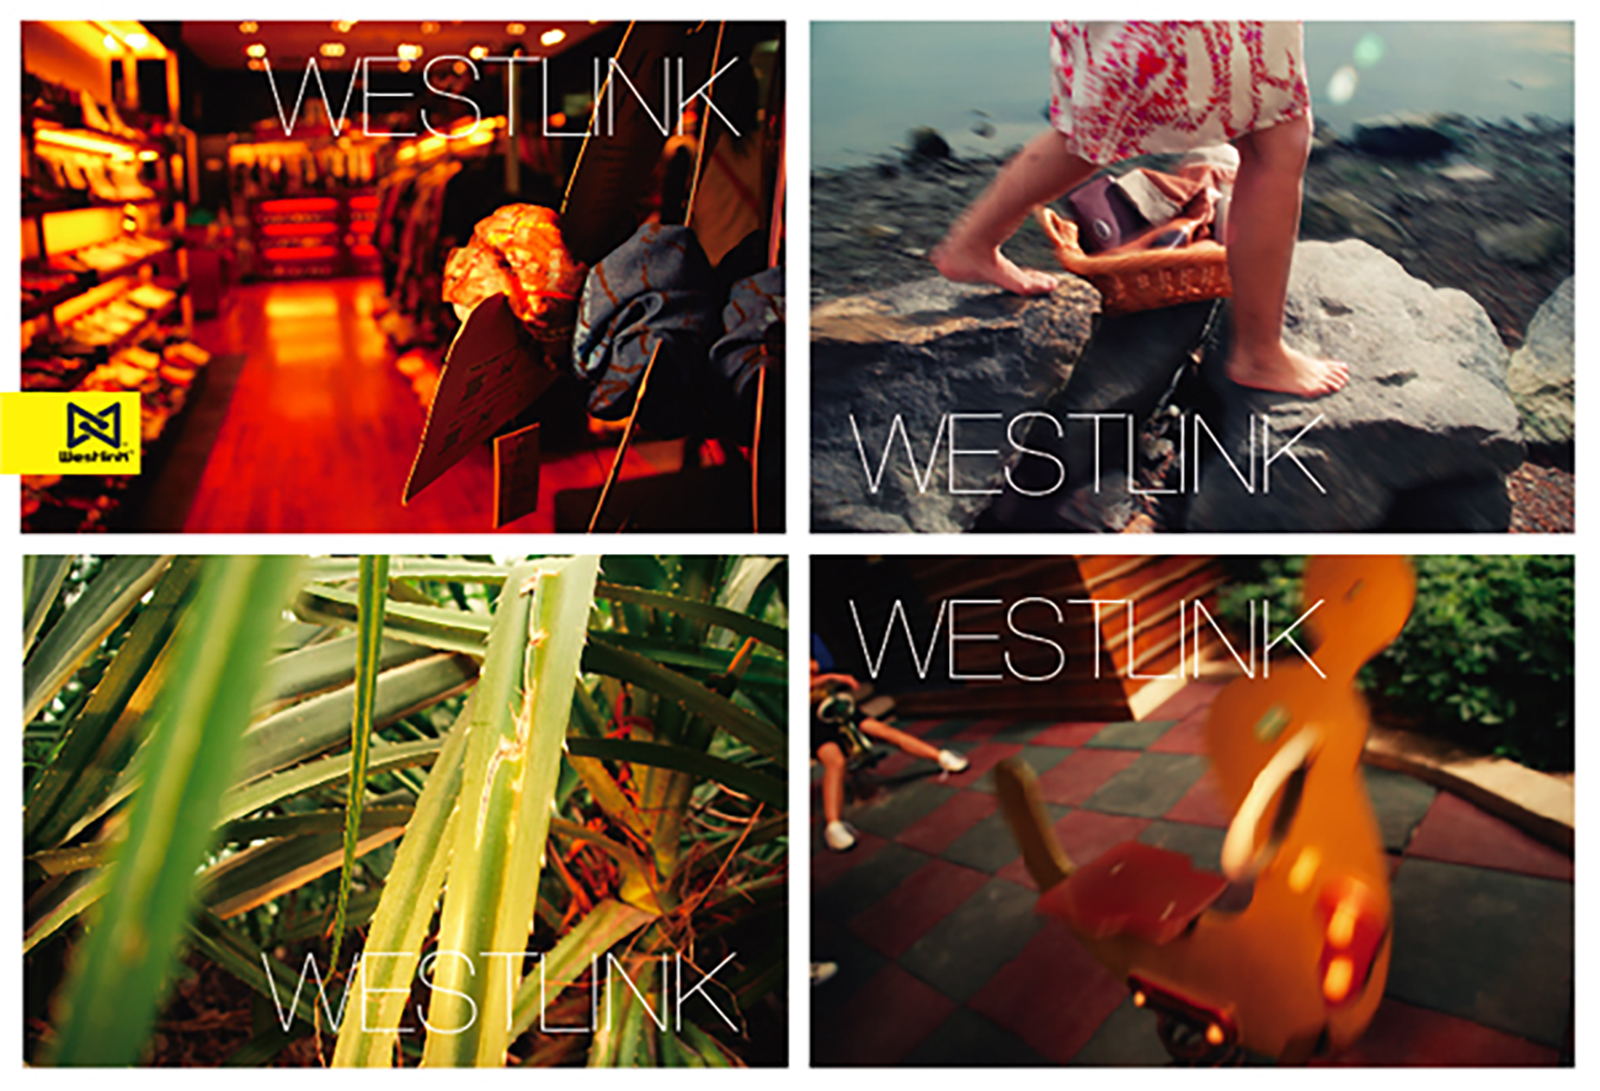 西域 | Westlink catalog & photography 1